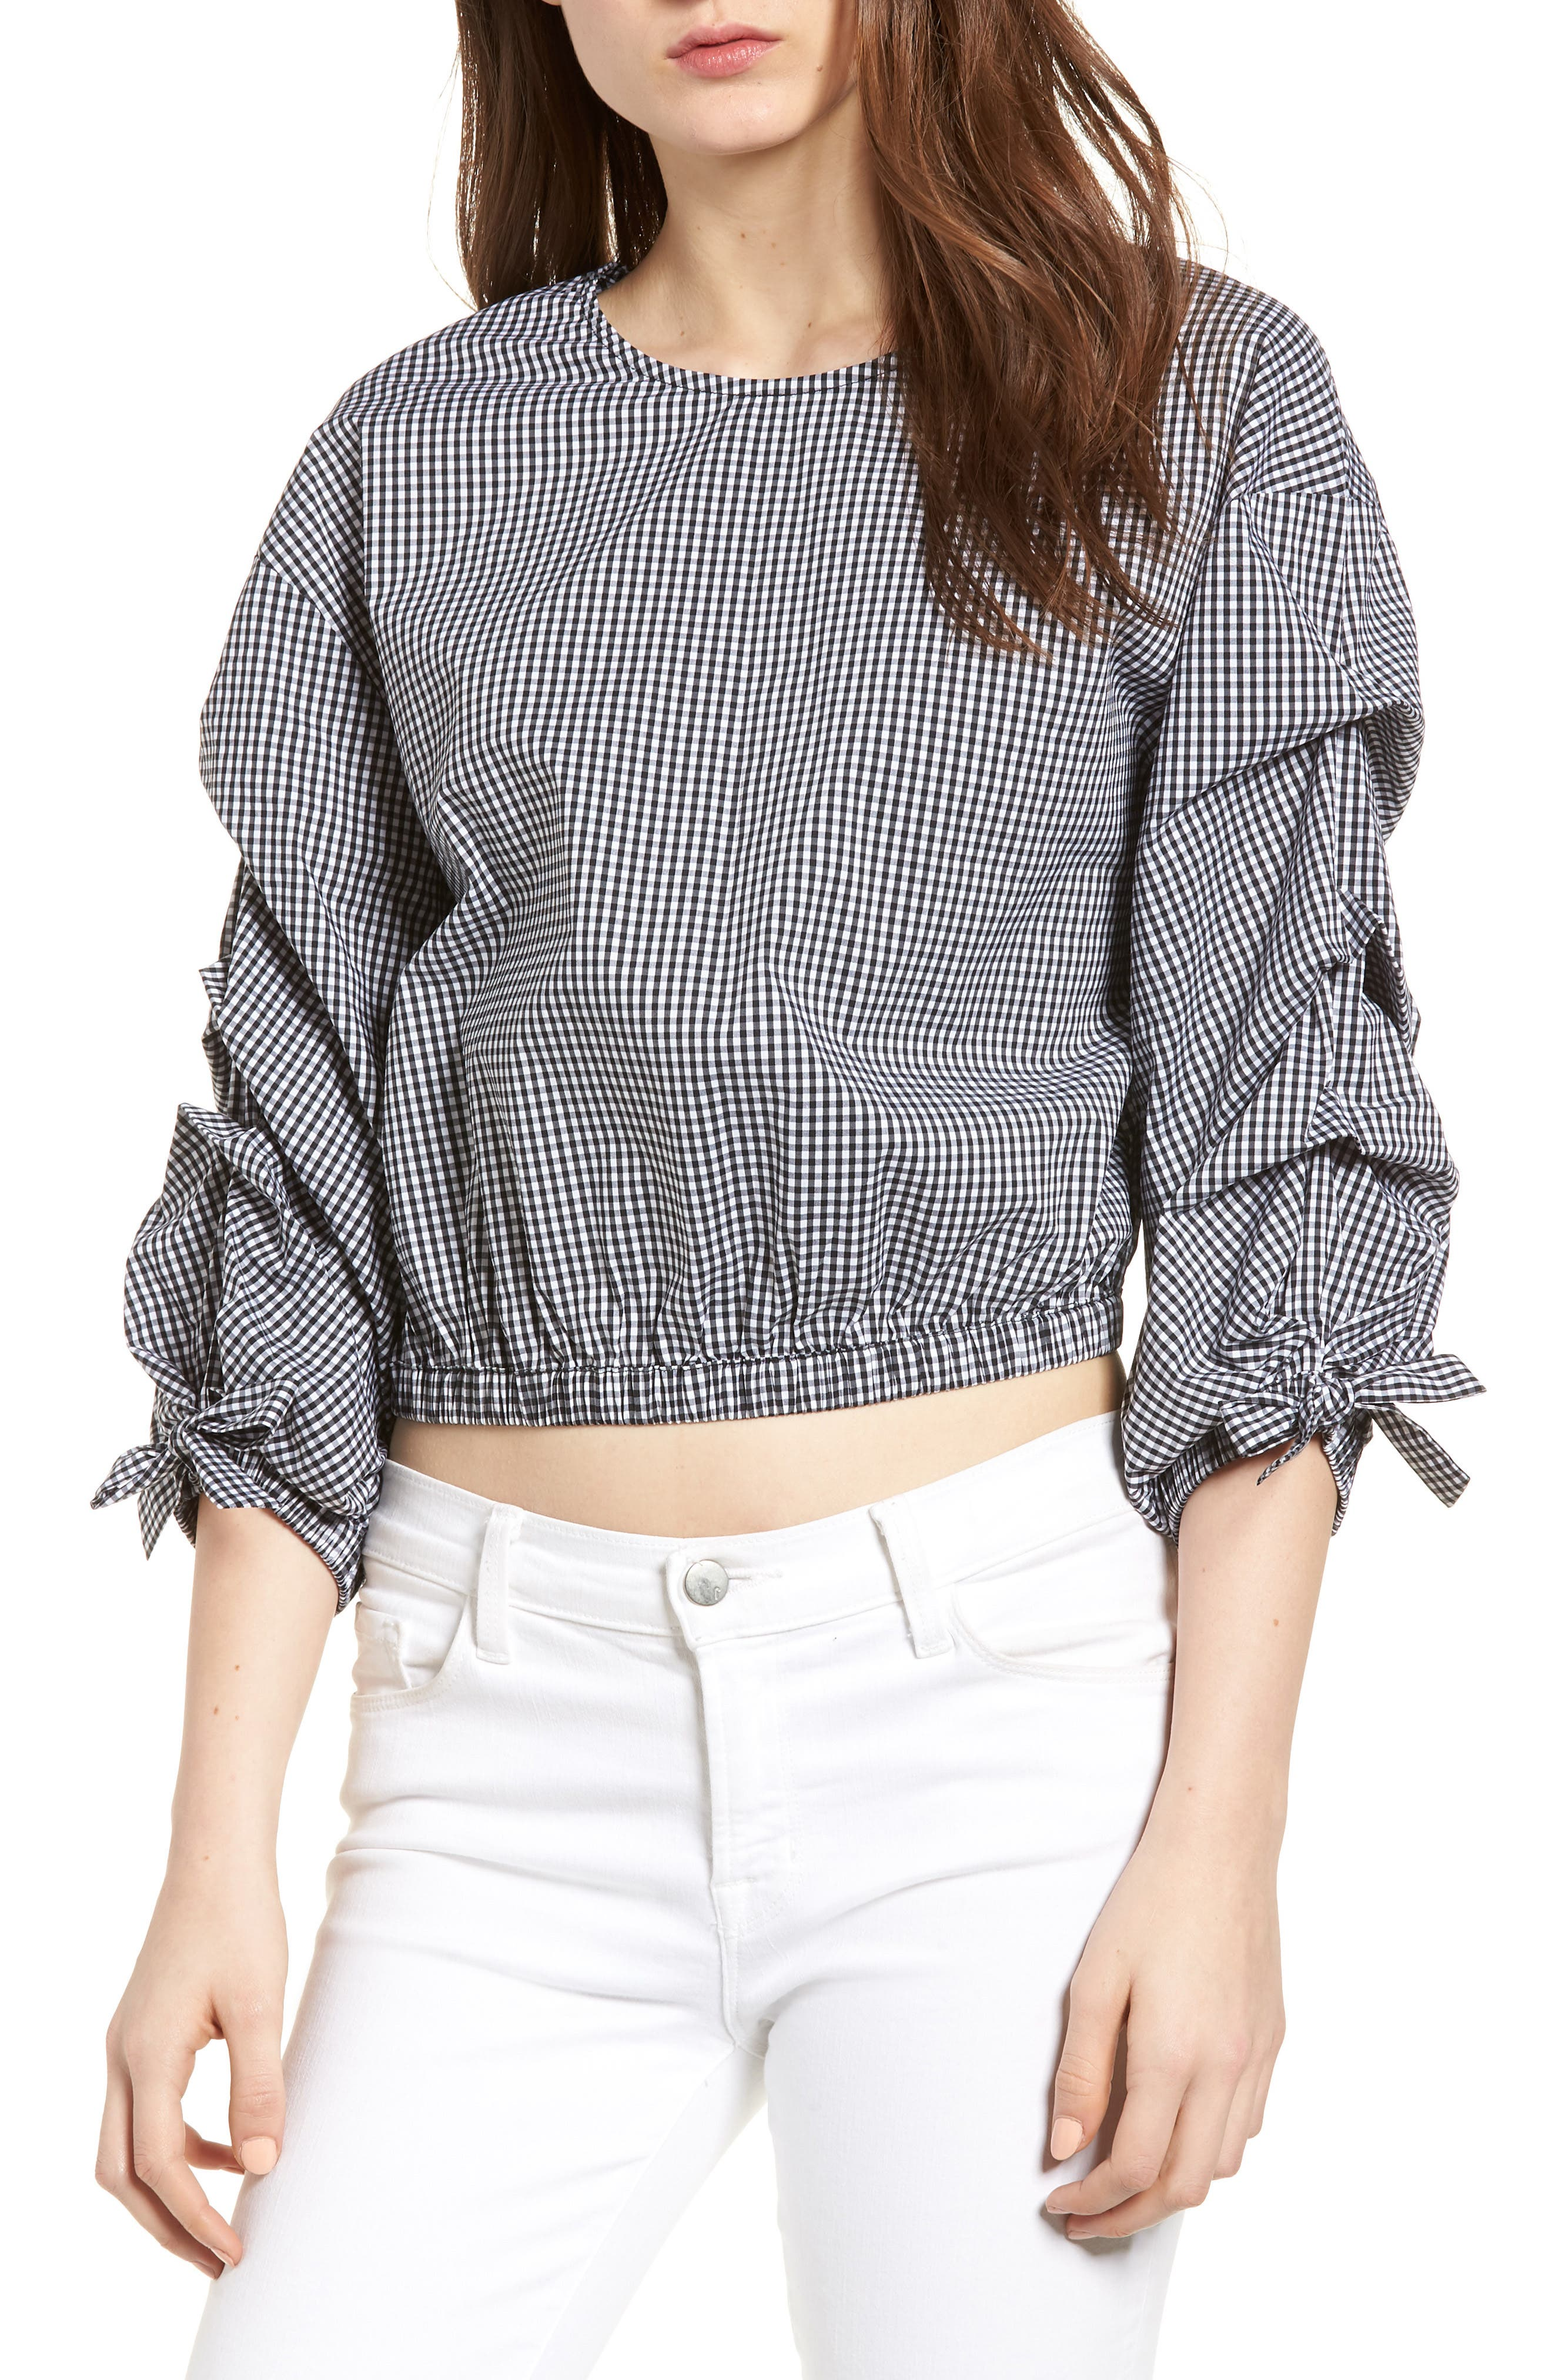 Bishop + Young Ruched Sleeve Blouse,                         Main,                         color, 001